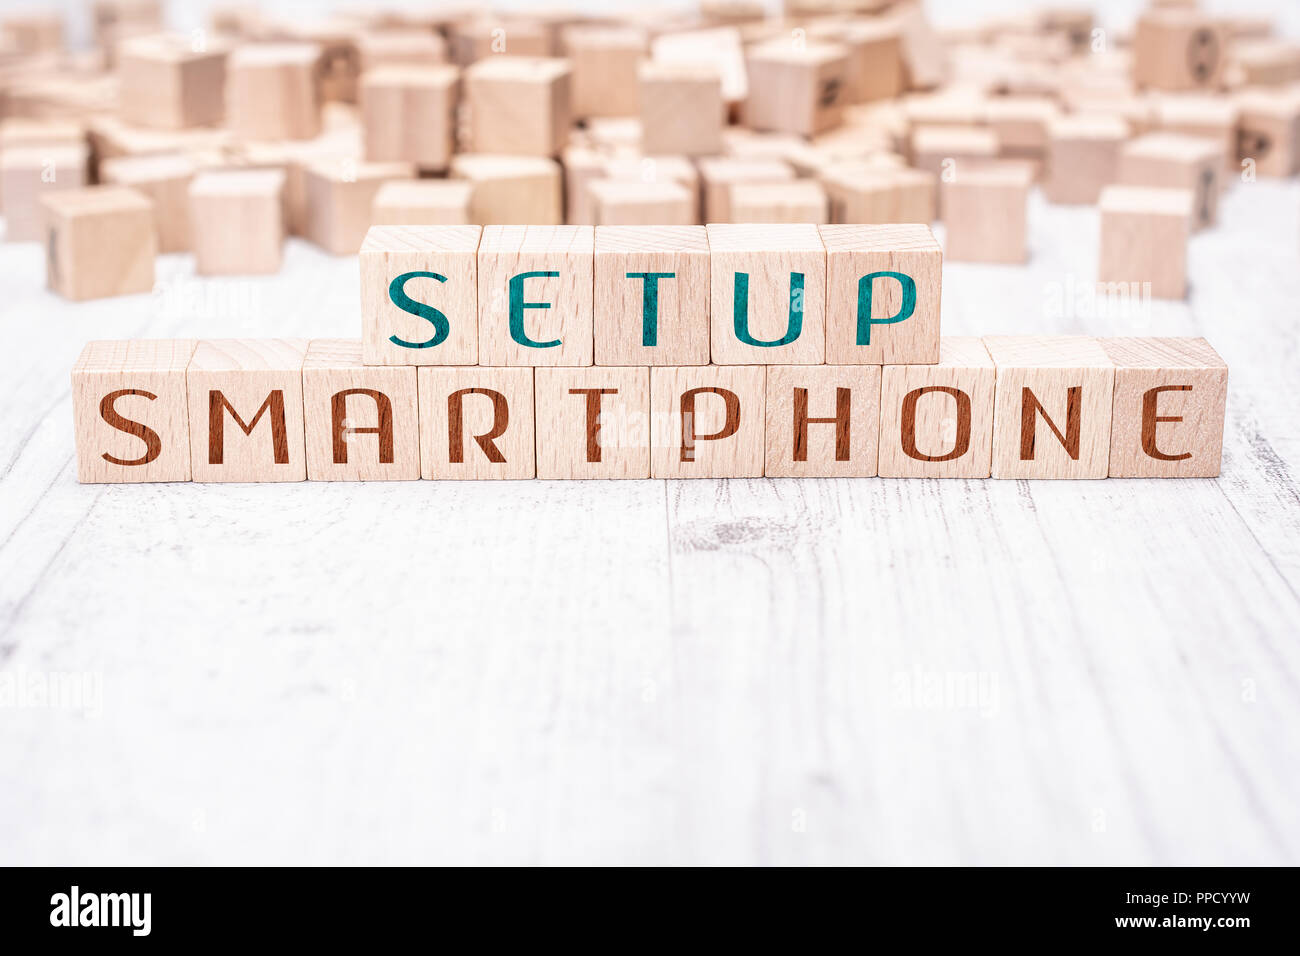 The Words Setup Smartphone Formed By Wooden Blocks On A White Table - Stock Image